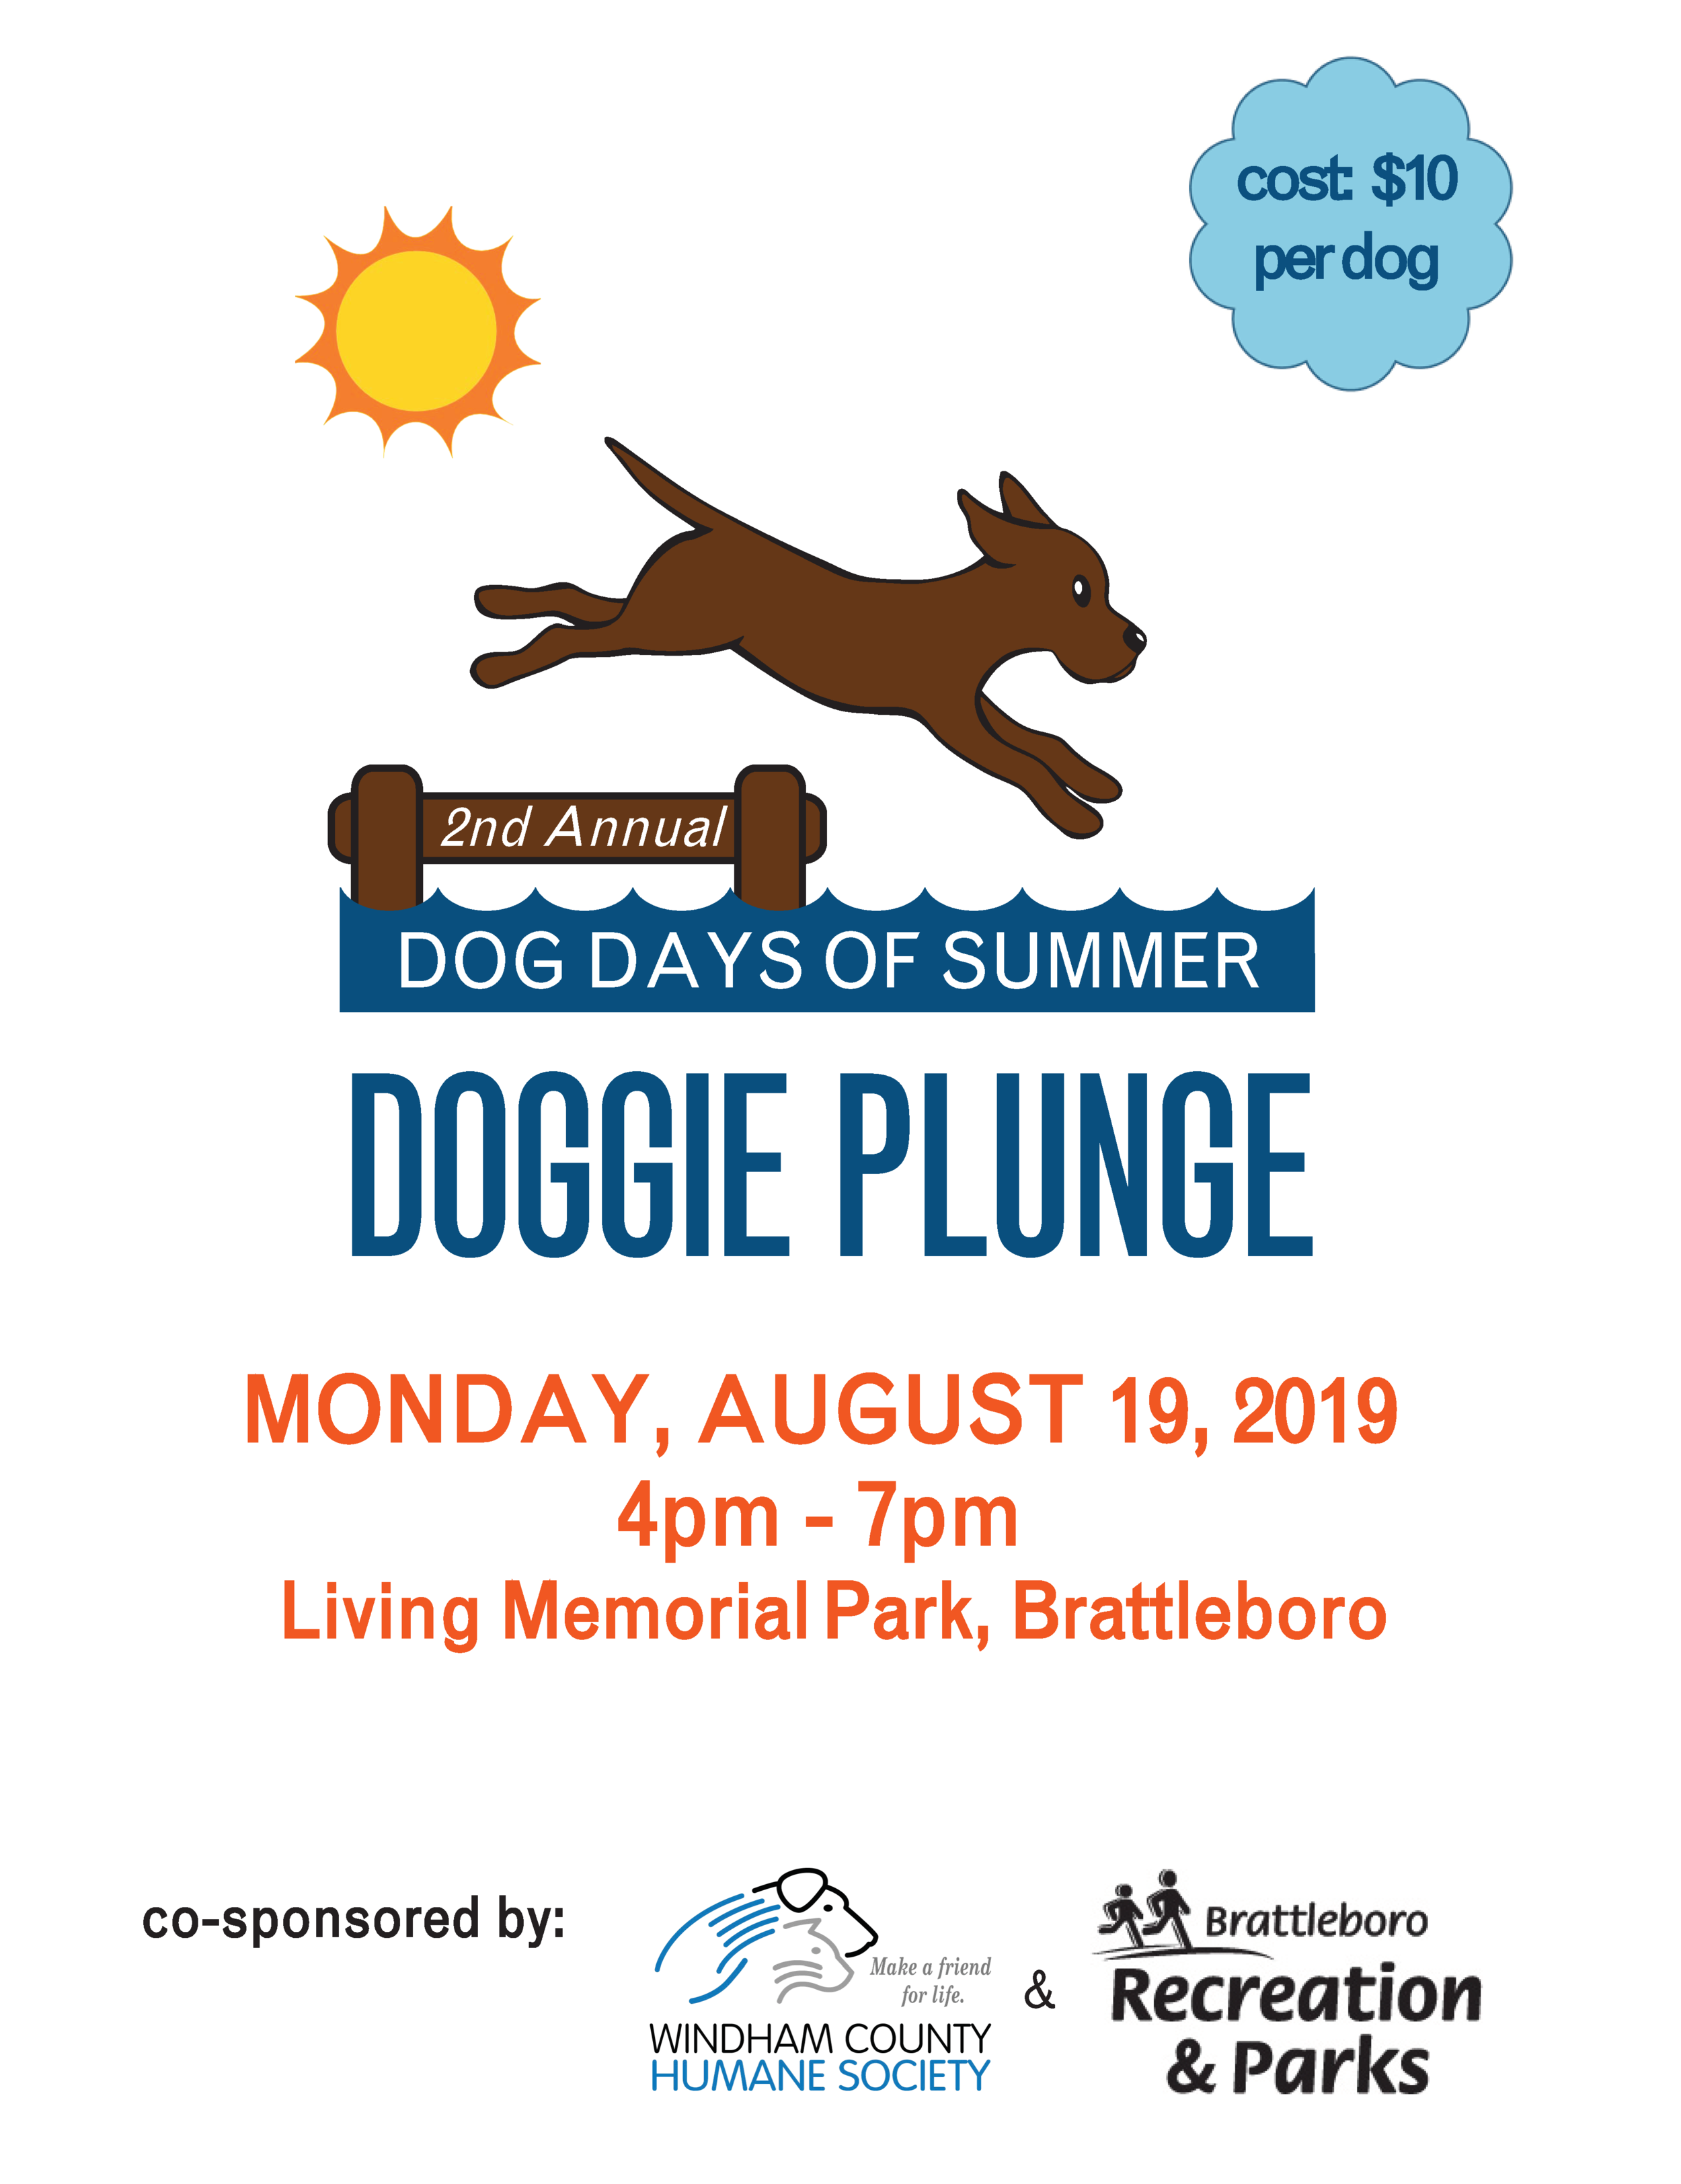 doggie plunge limited info graphic_2nd annual.png